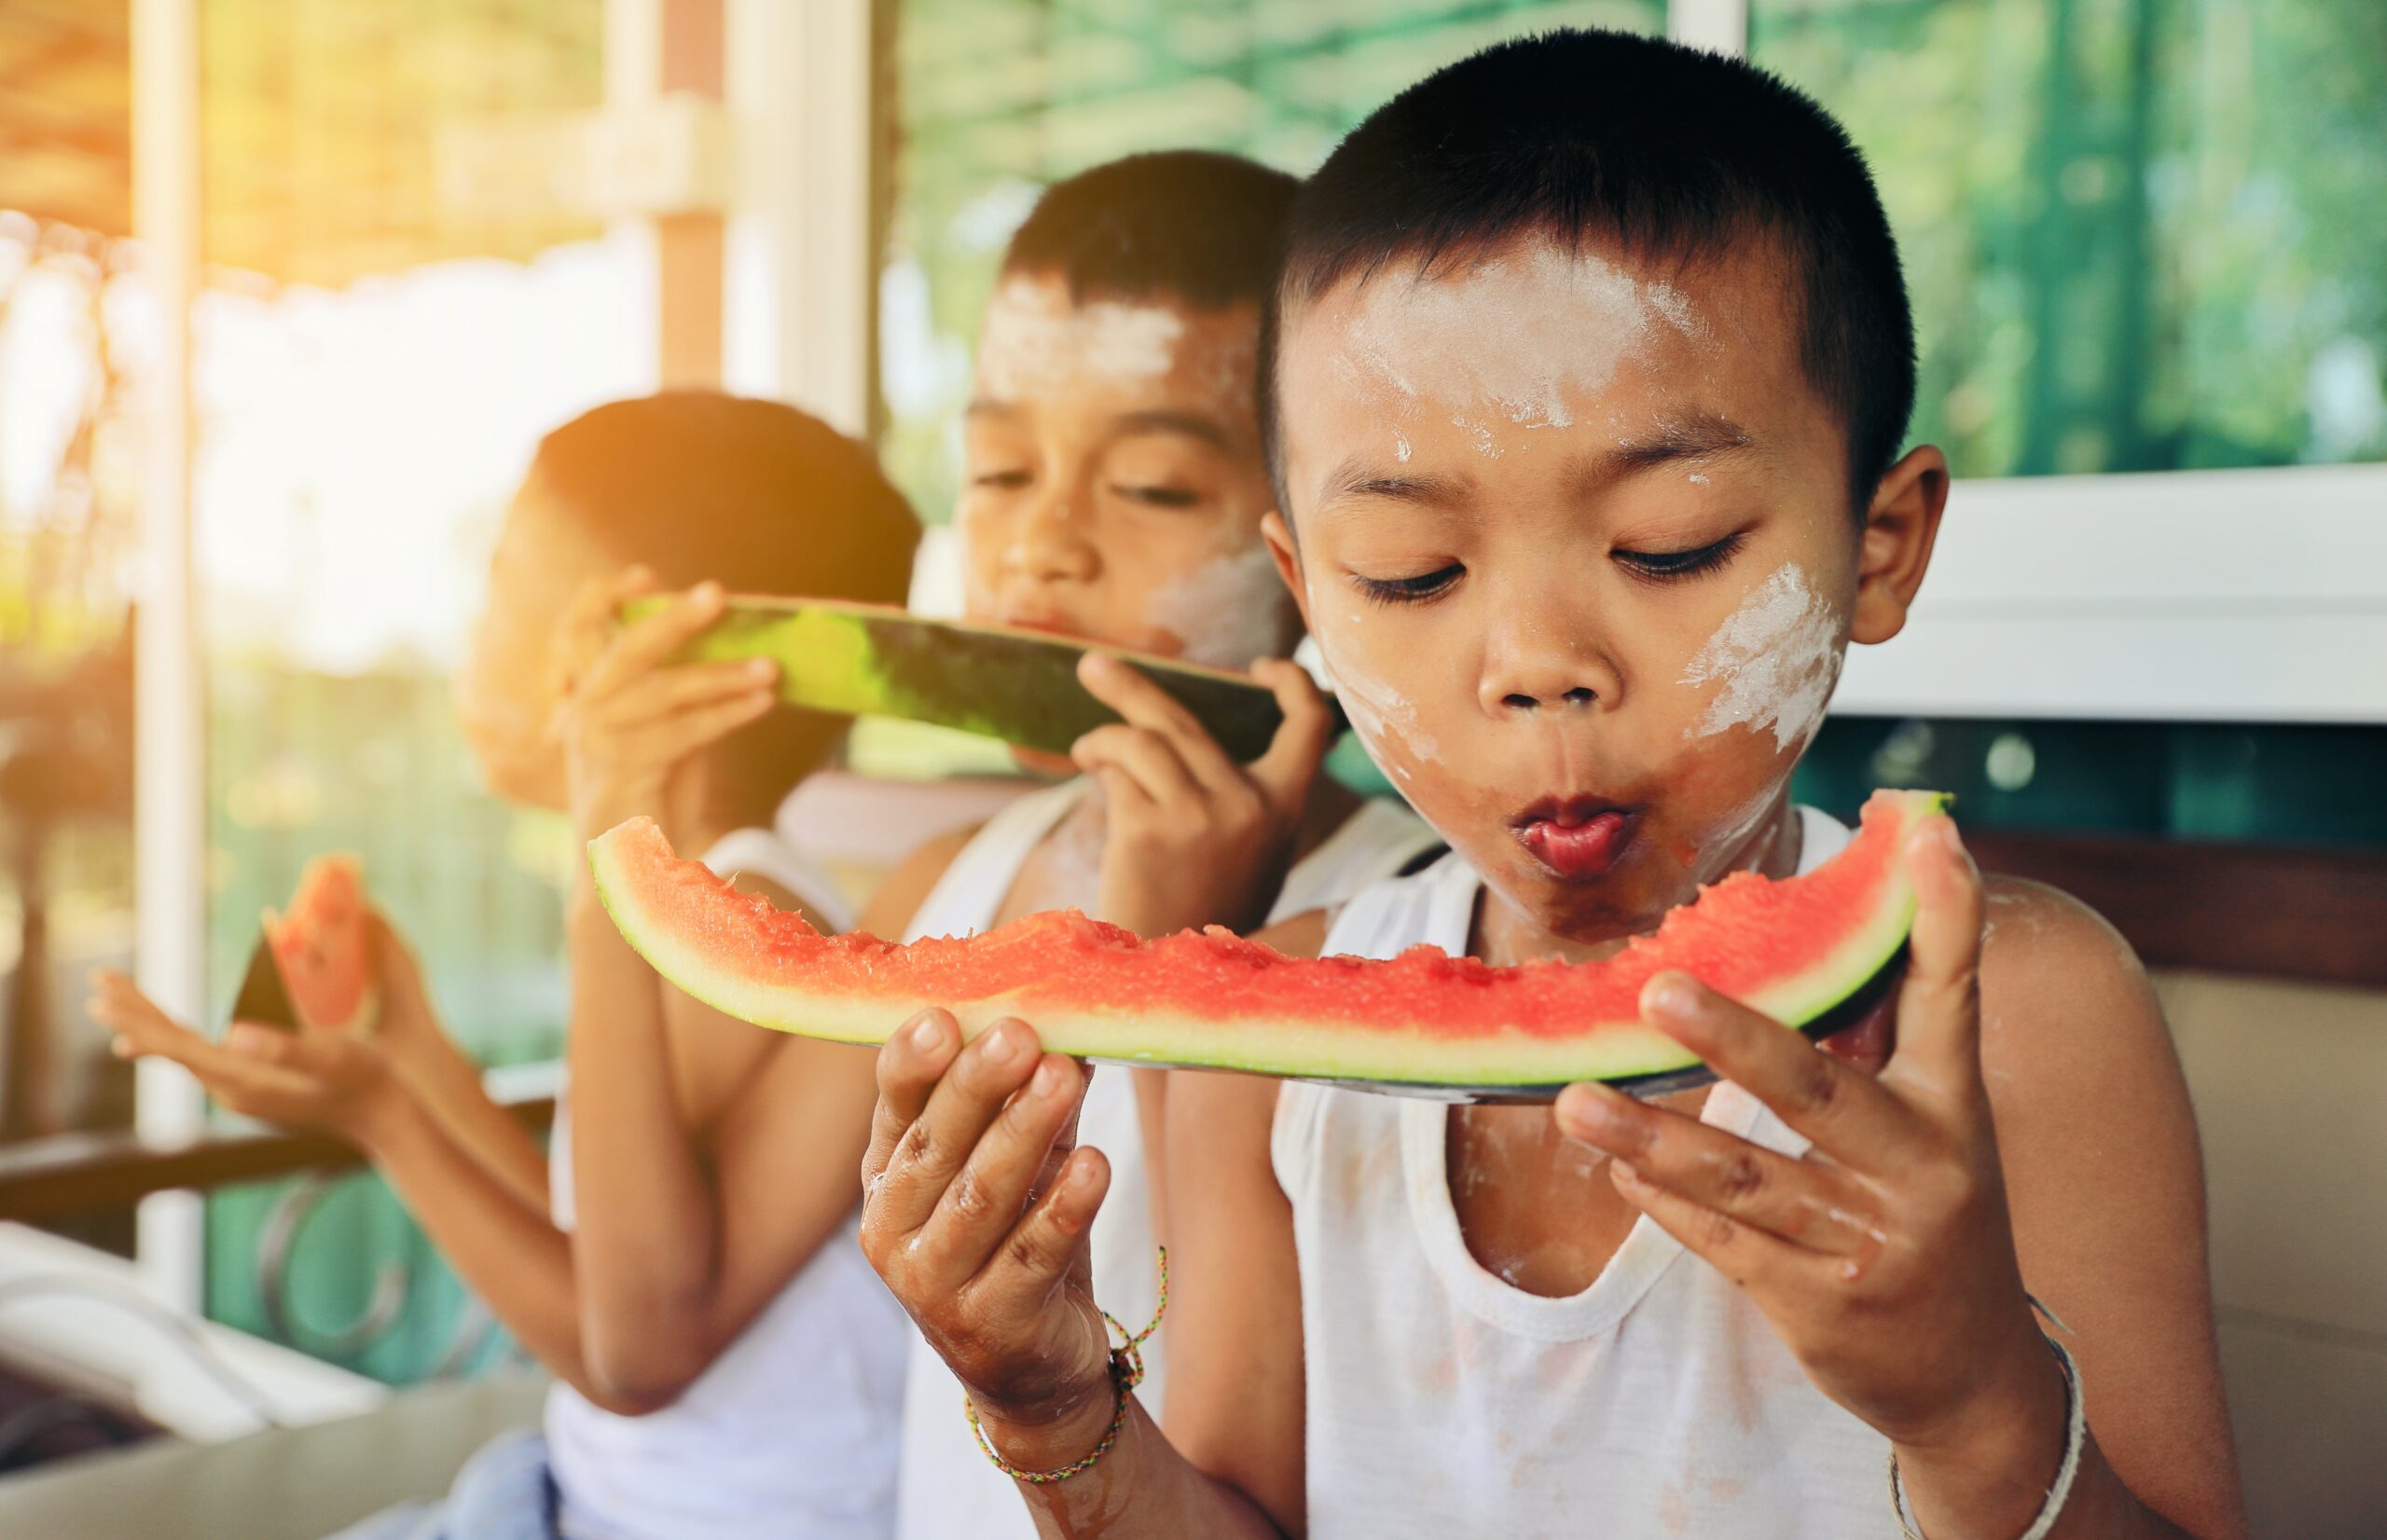 new research from the University of East Anglia has concluded that fruit, vegetables, and nutritious diets also have a beneficial effect on mental well-being.